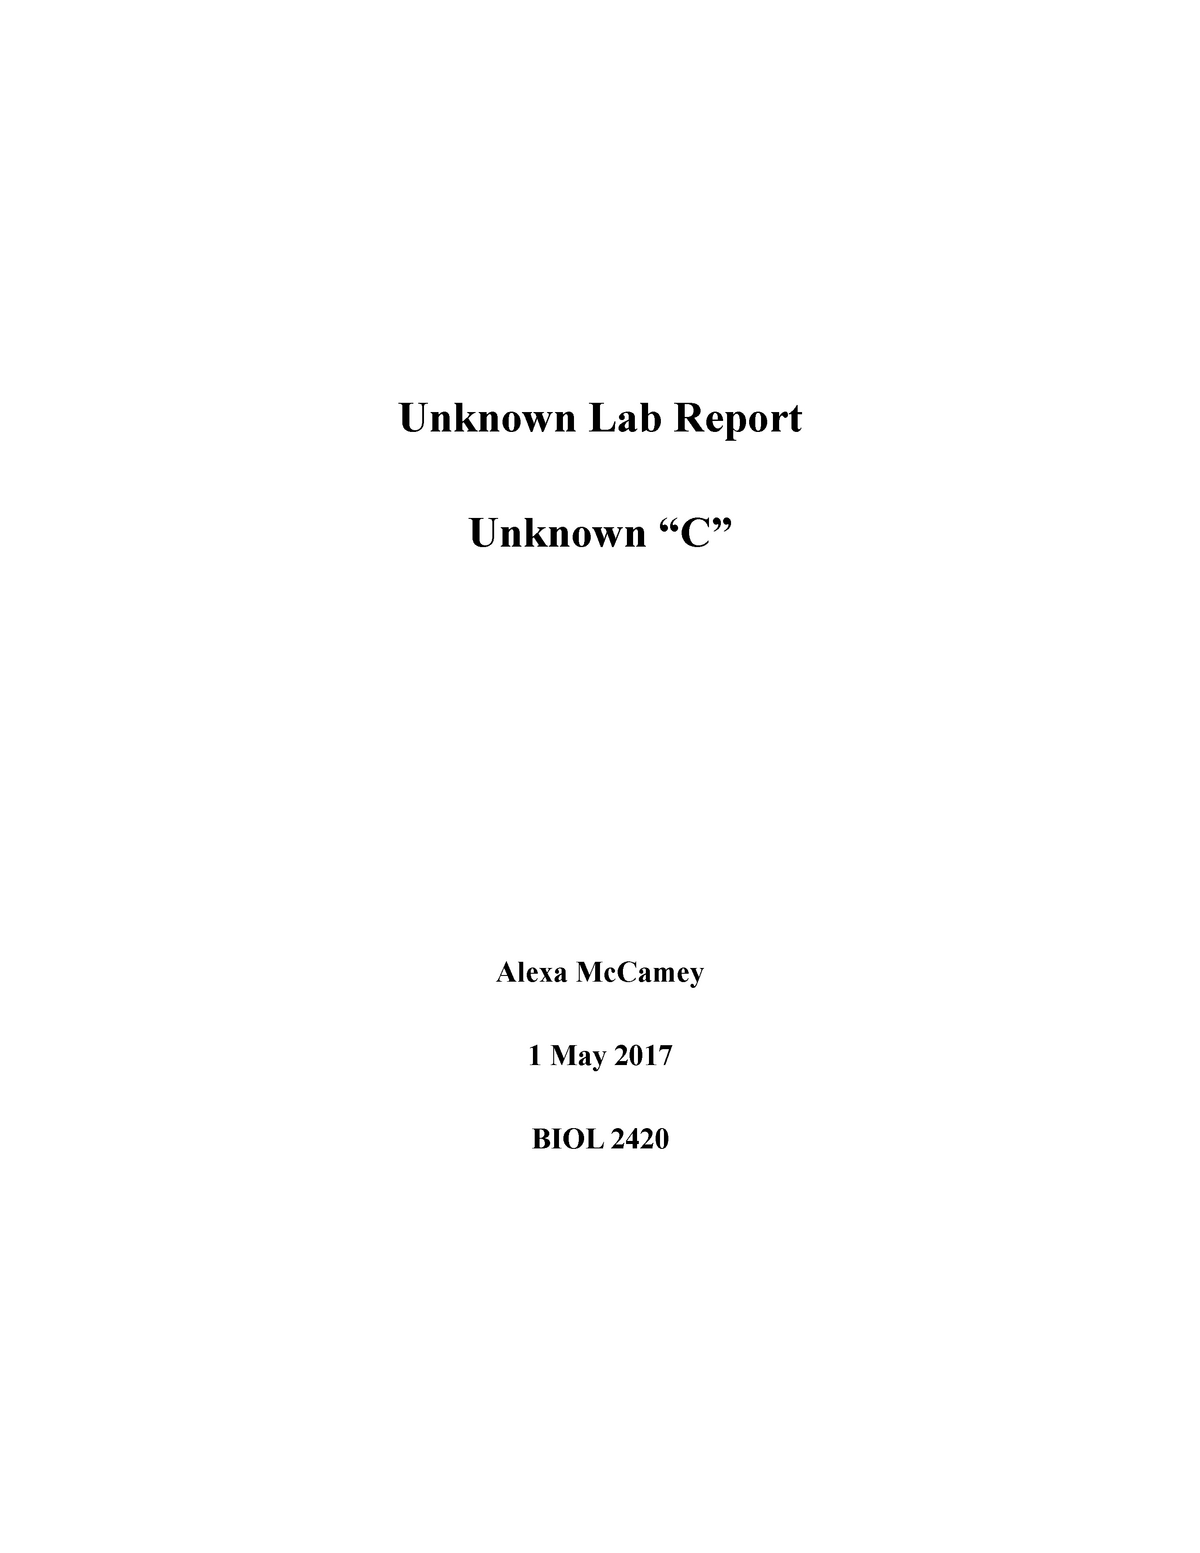 Unknown Bacteria Lab Report - BIOL 307 Microbiology - StuDocu